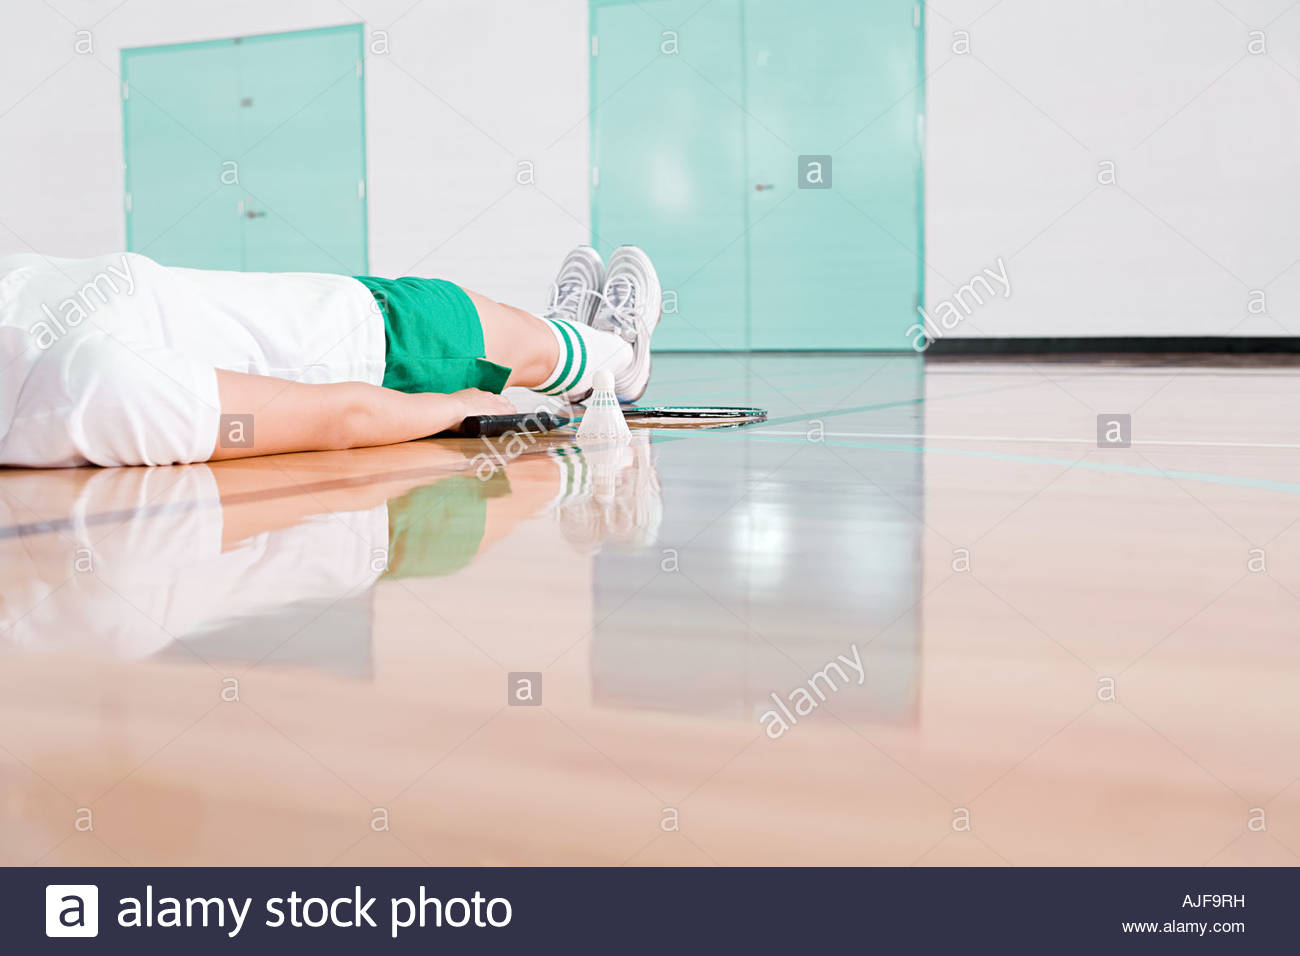 A person lying down on a badminton court... - Stock Image